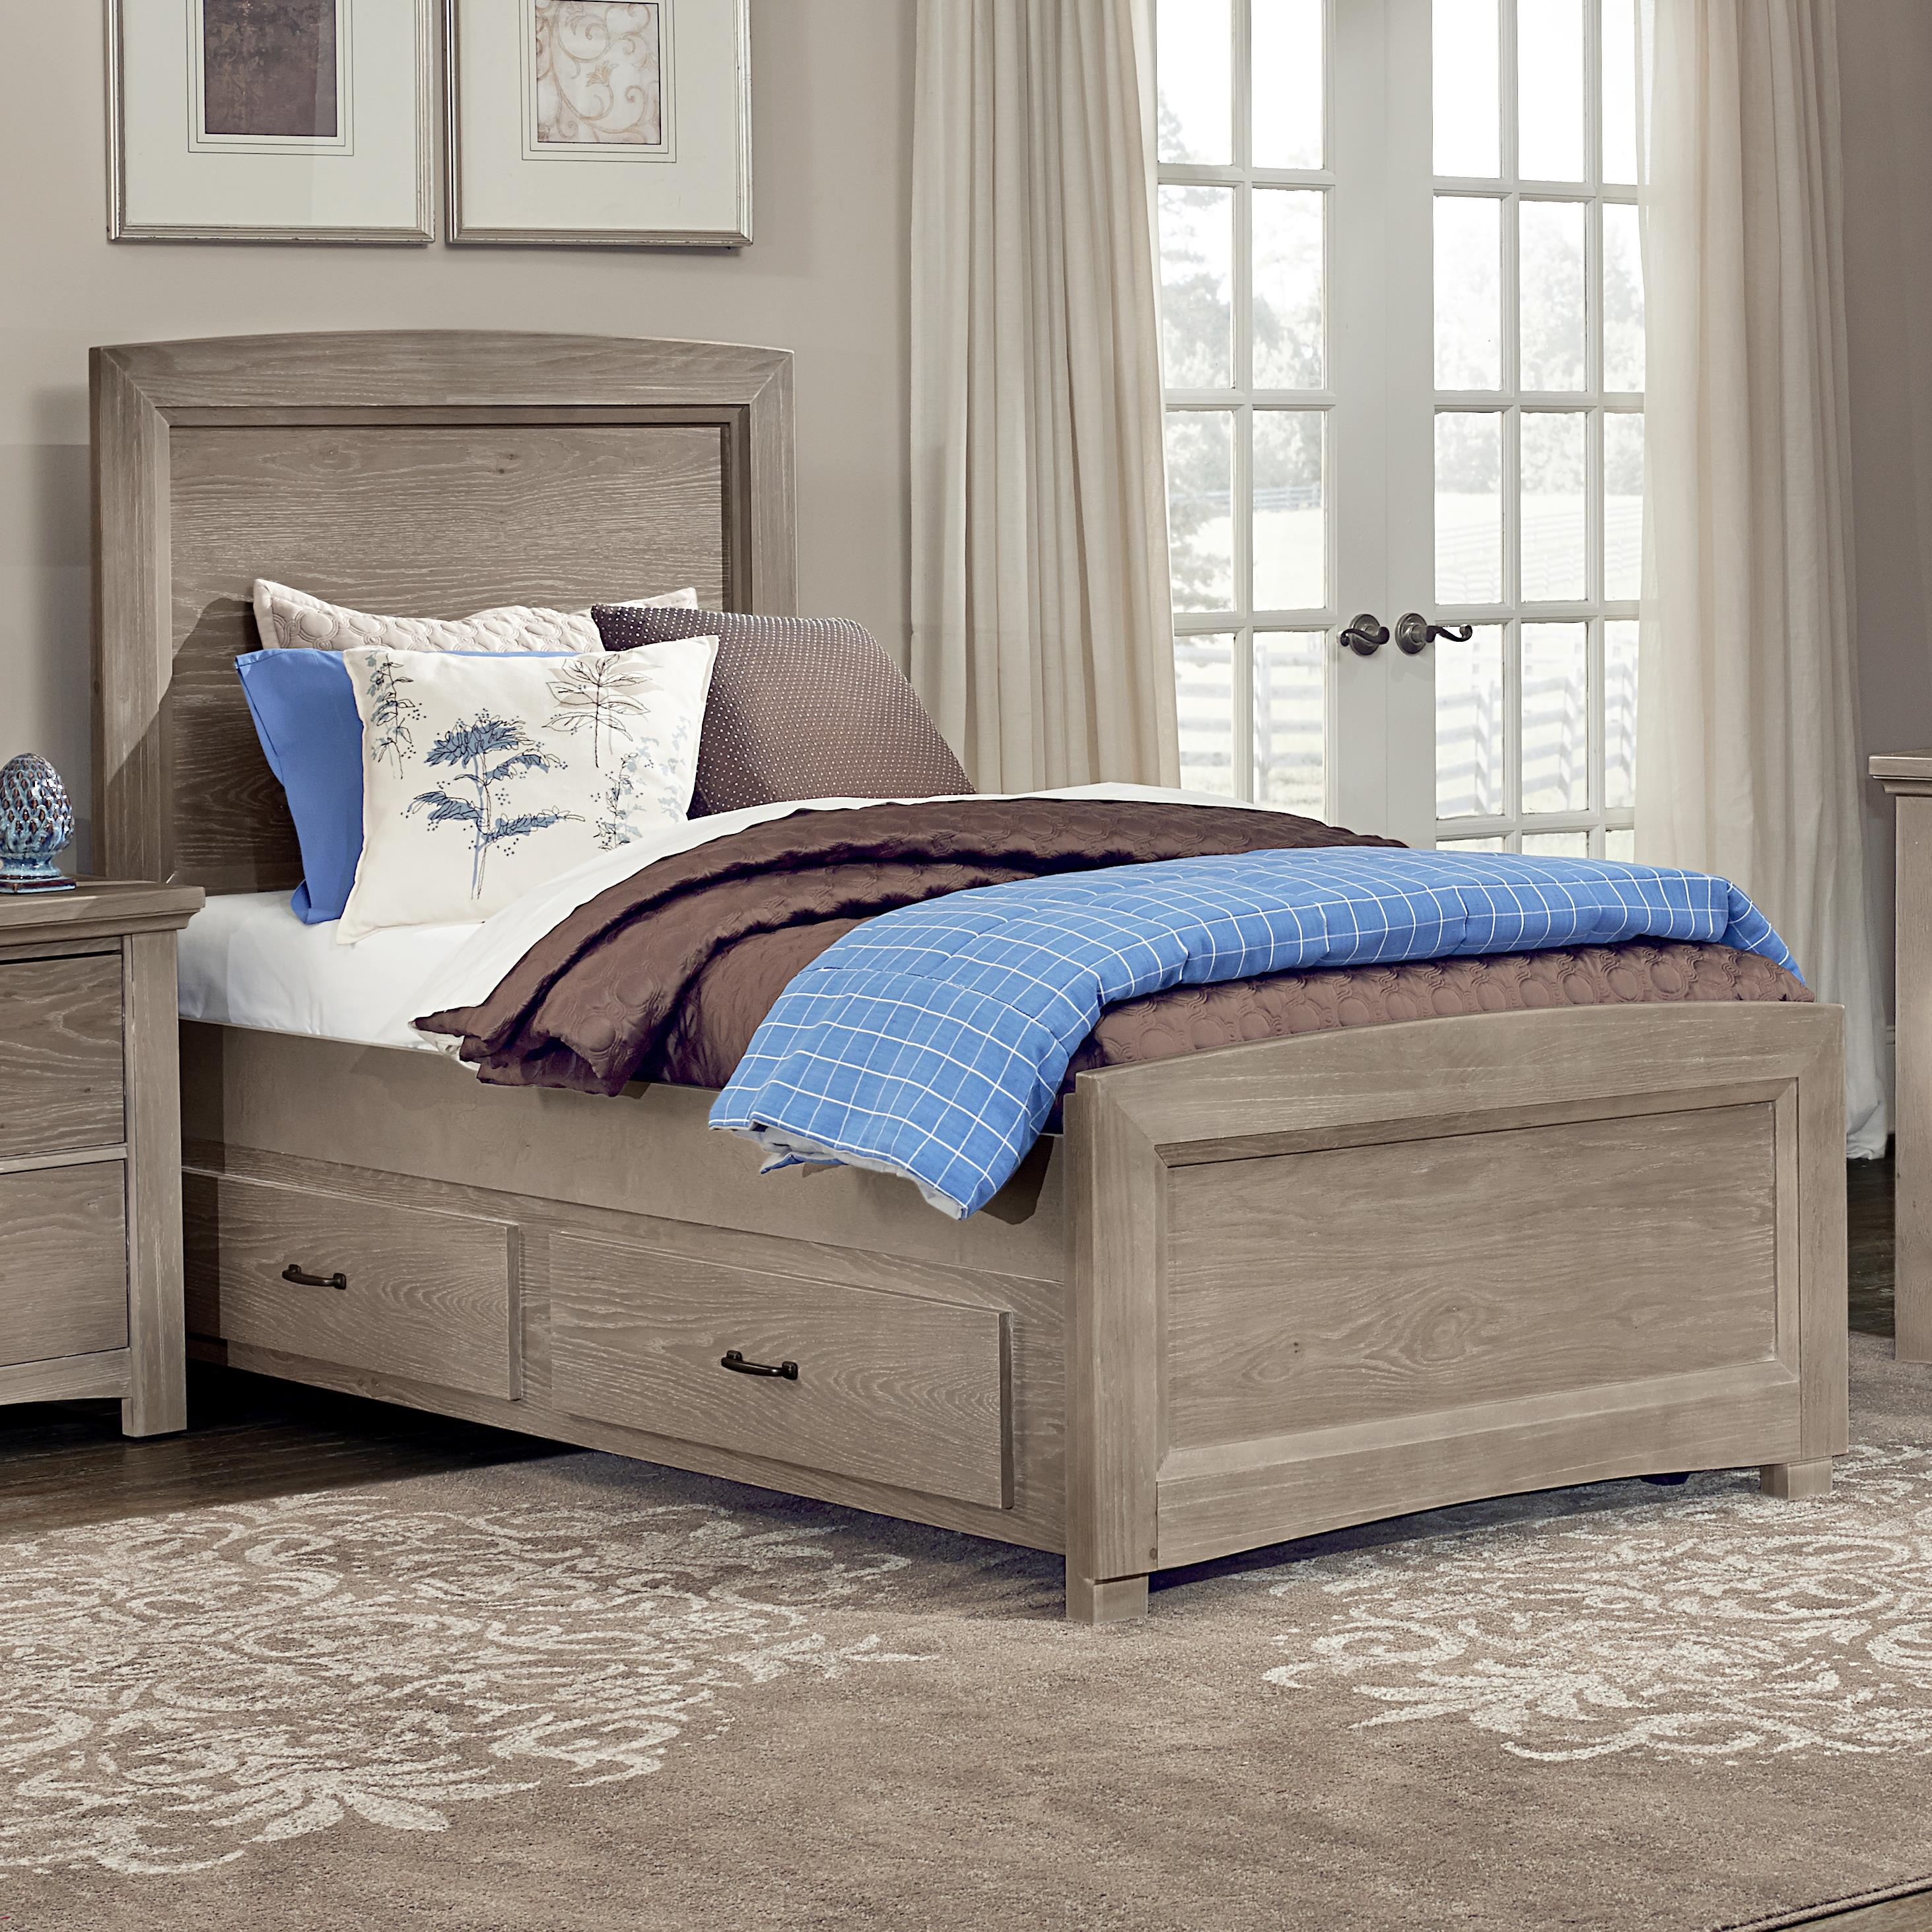 Transitions Twin Panel Bed with Trundle by Vaughan Bassett at Lapeer Furniture & Mattress Center